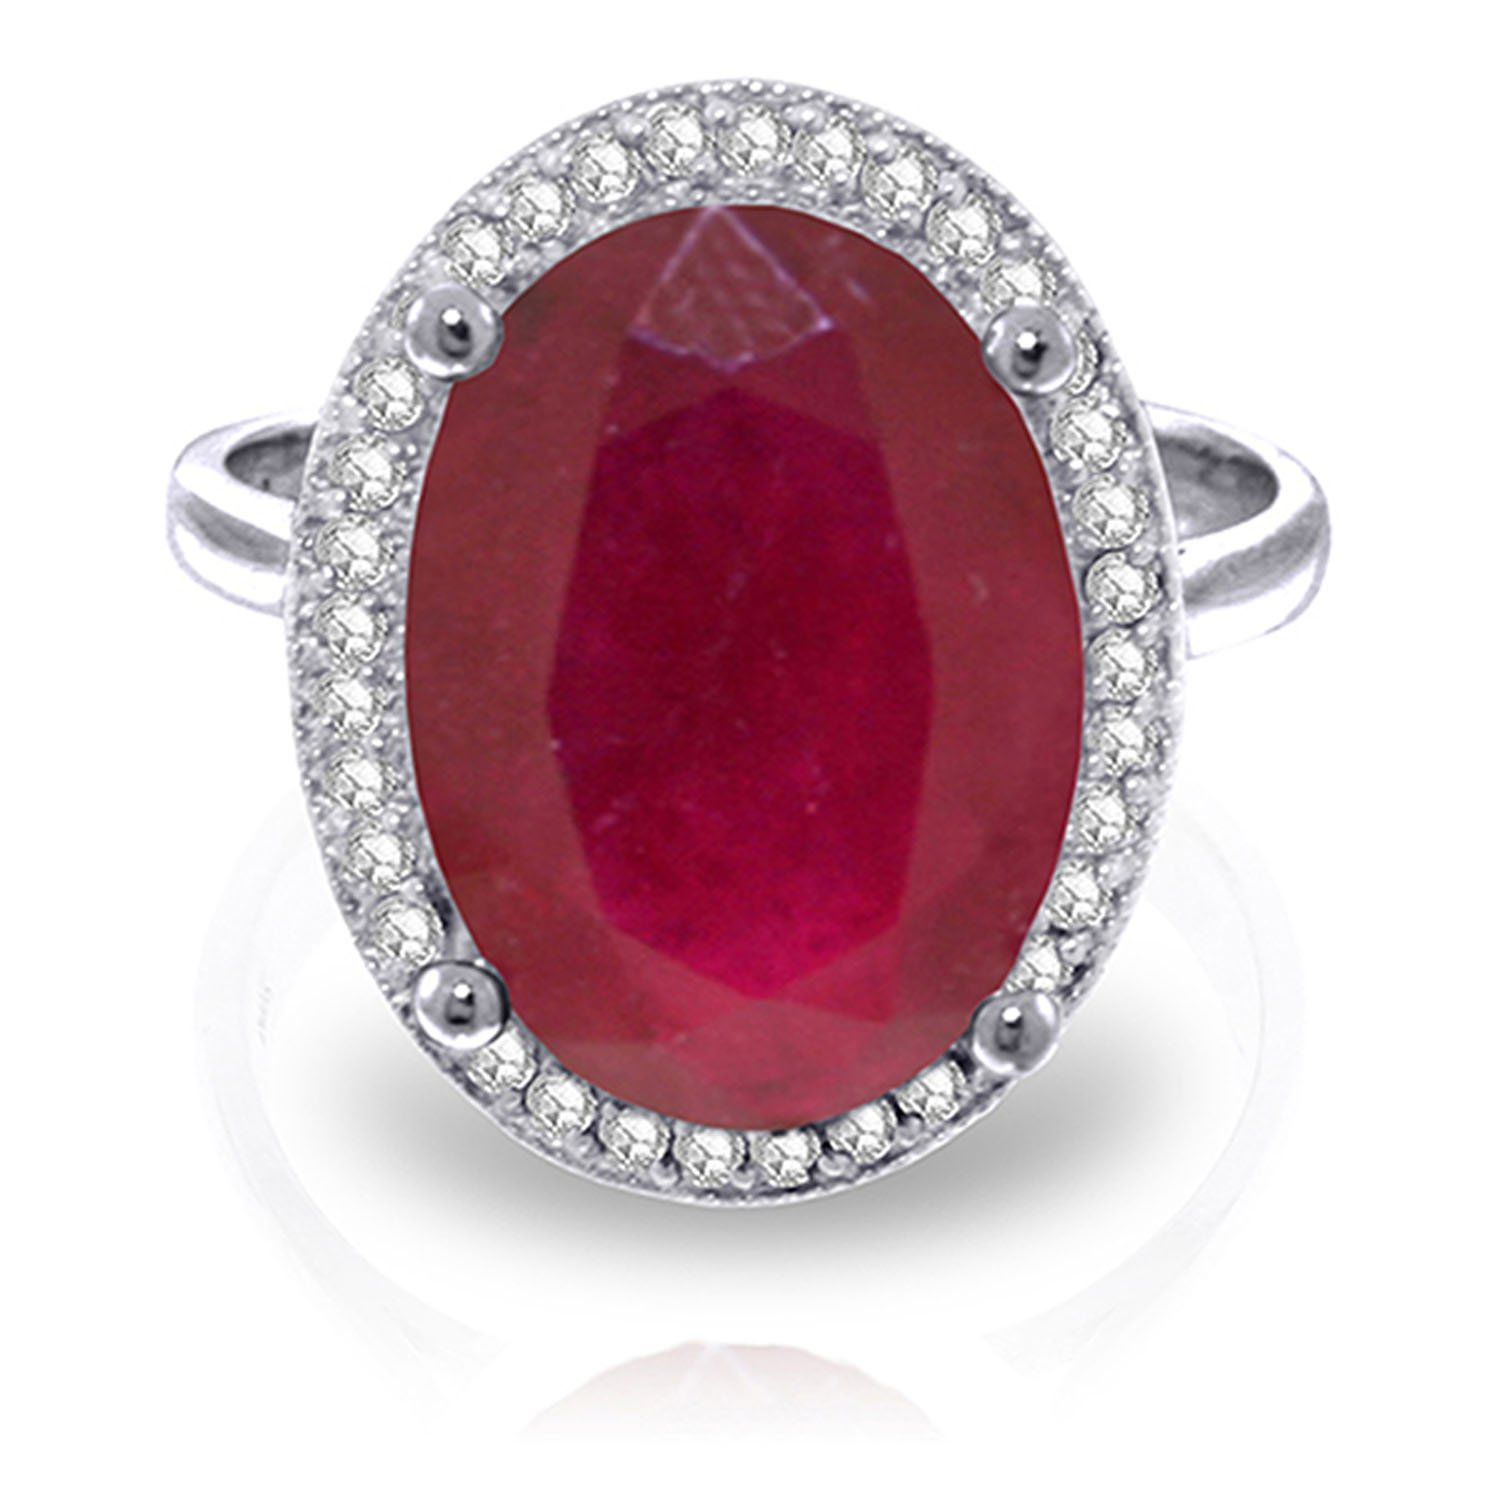 7.93 Carat 14k Solid White Gold Ring with Natural Oval-shaped Ruby and Genuine Diamonds - Size 7.5